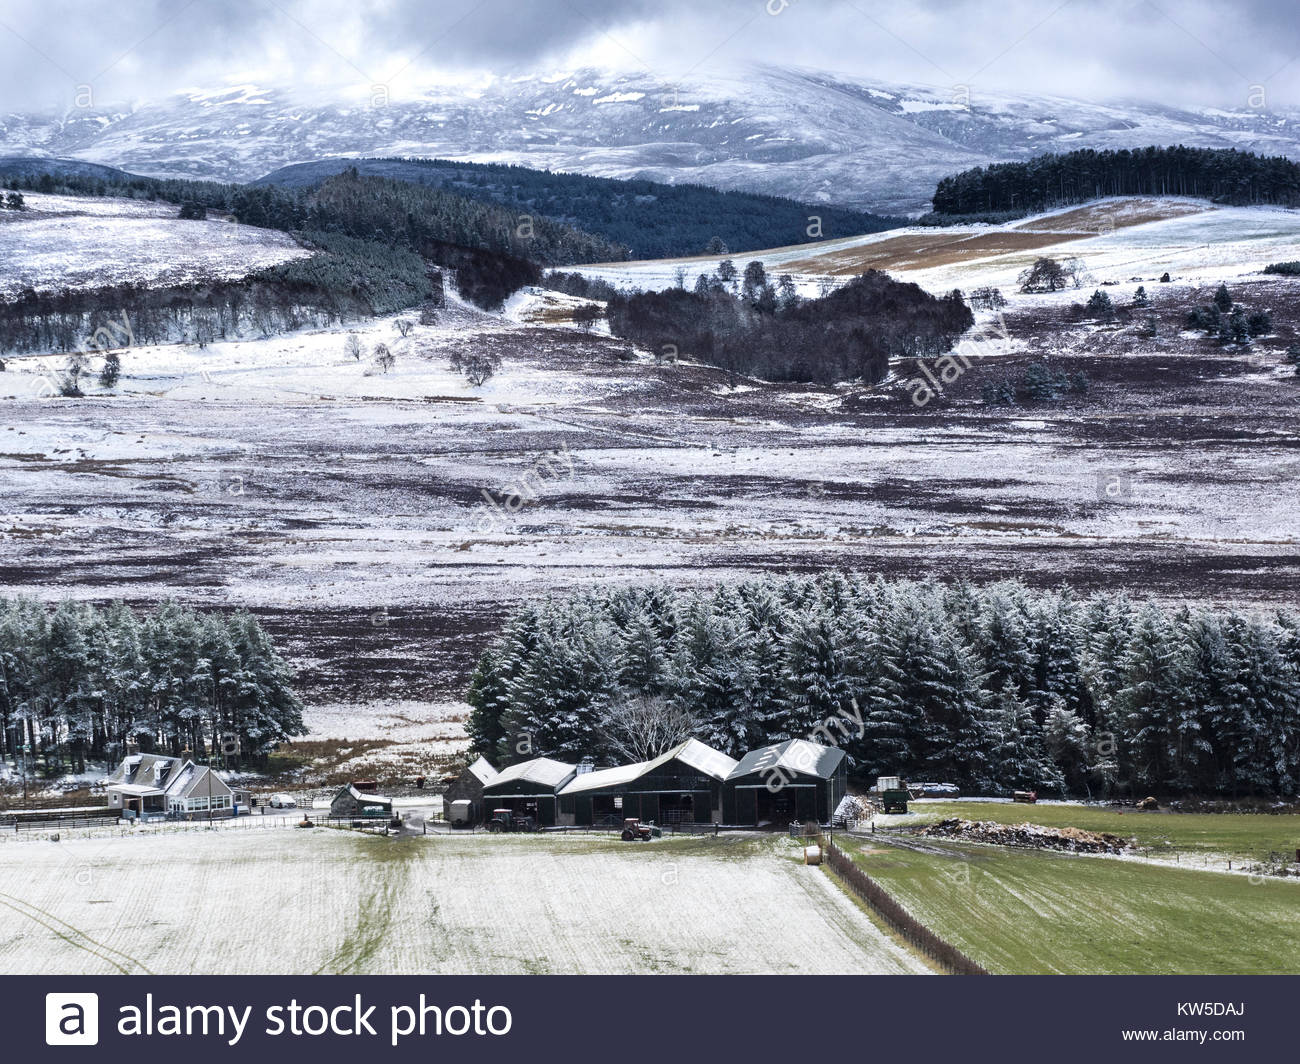 Snow on the Cairngorm Mountains of Scotland. - Stock Image